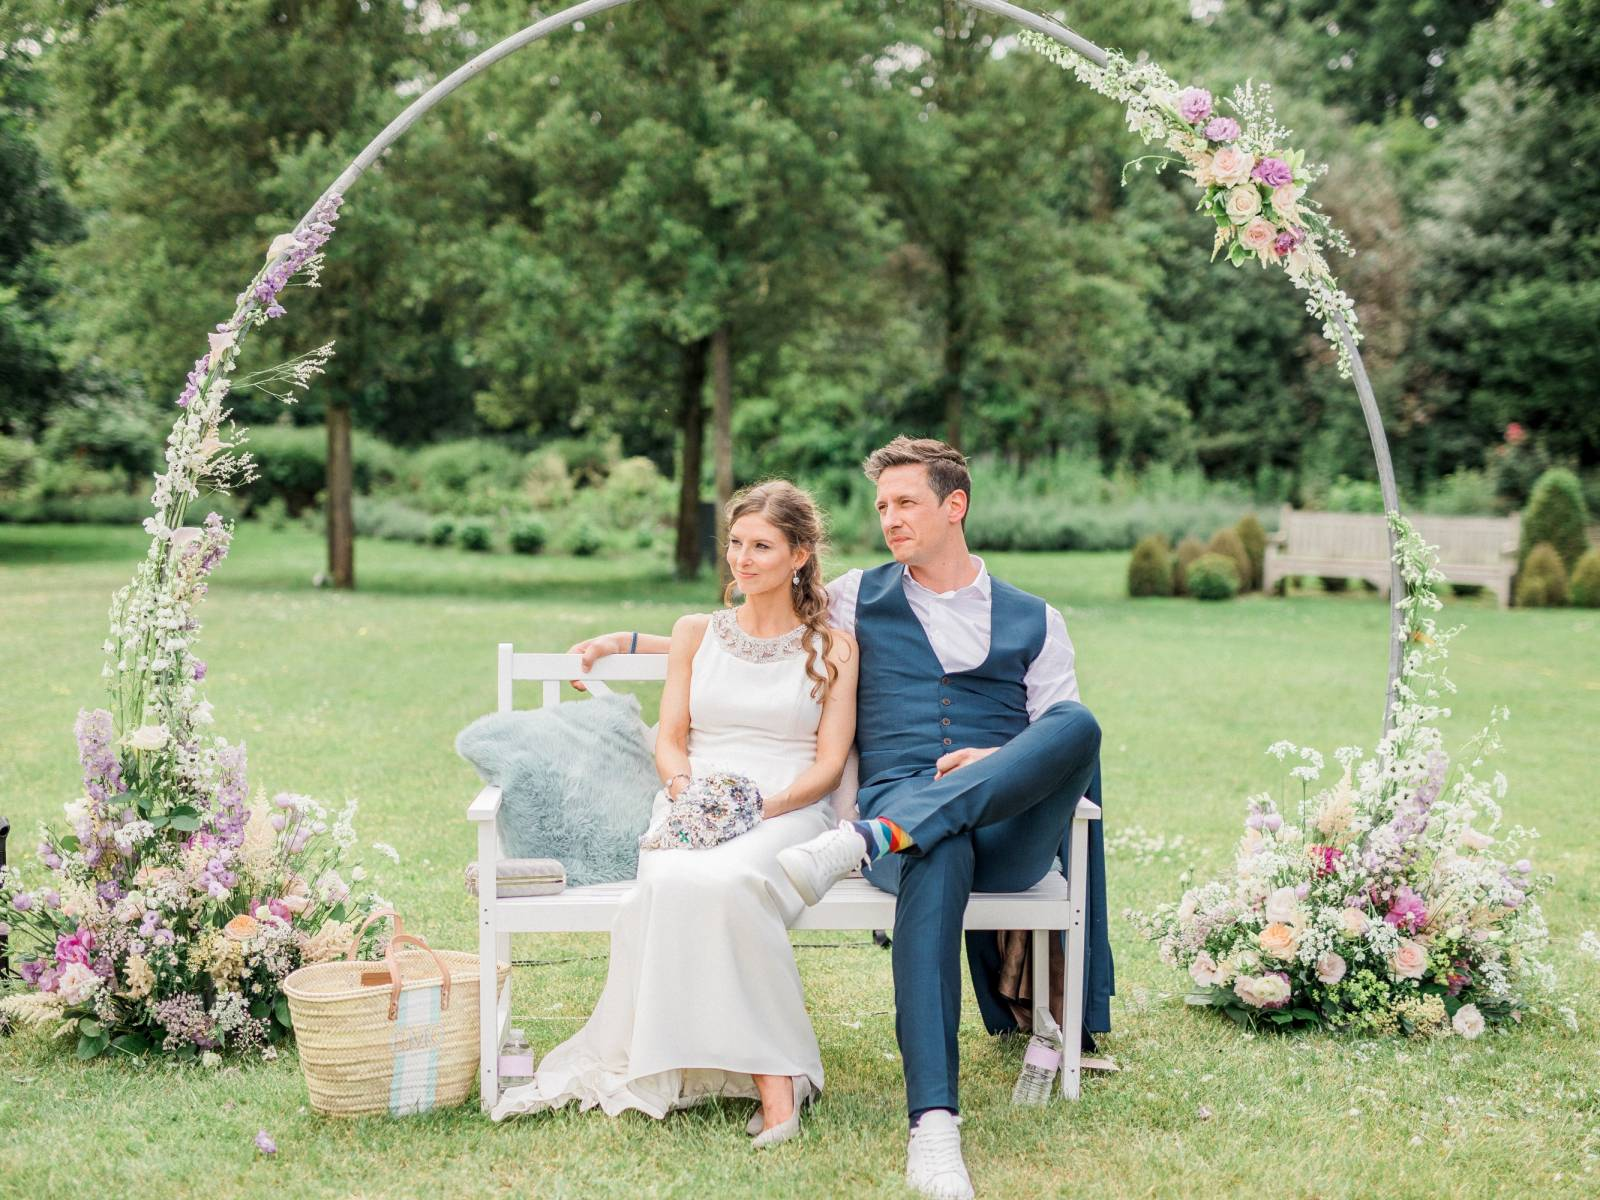 Alle Gebeure - wedding planner - fotograaf Elisabeth Van Lent - House of Weddings (15)